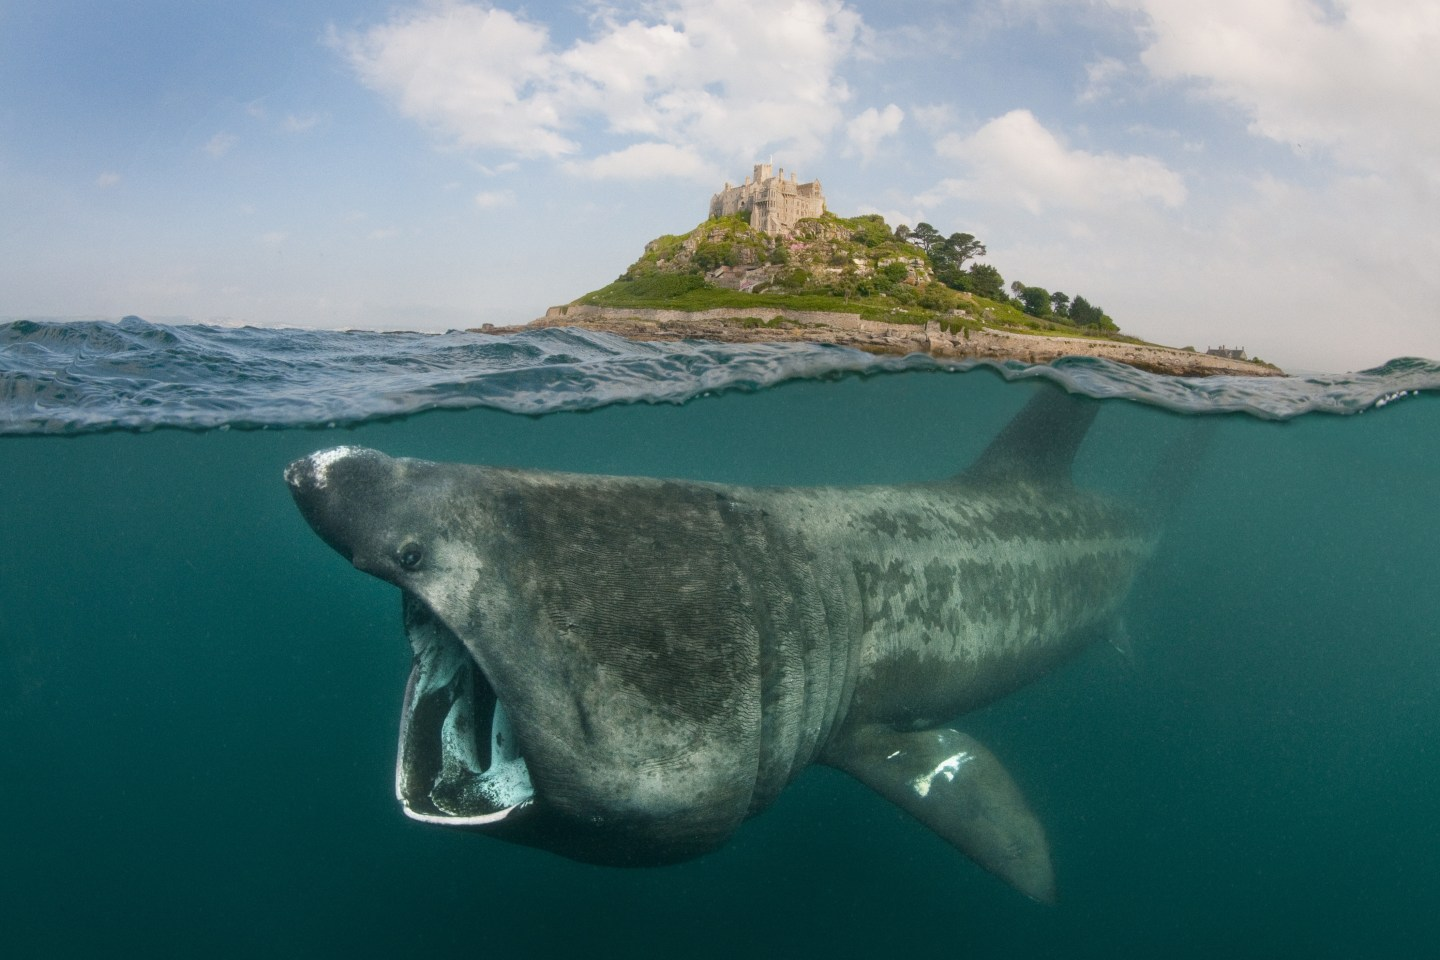 A split level digital composite showing a Basking shark (Ceterhinus maximus) feeding on plankton around St Michael's Mount, Cornwall, UK